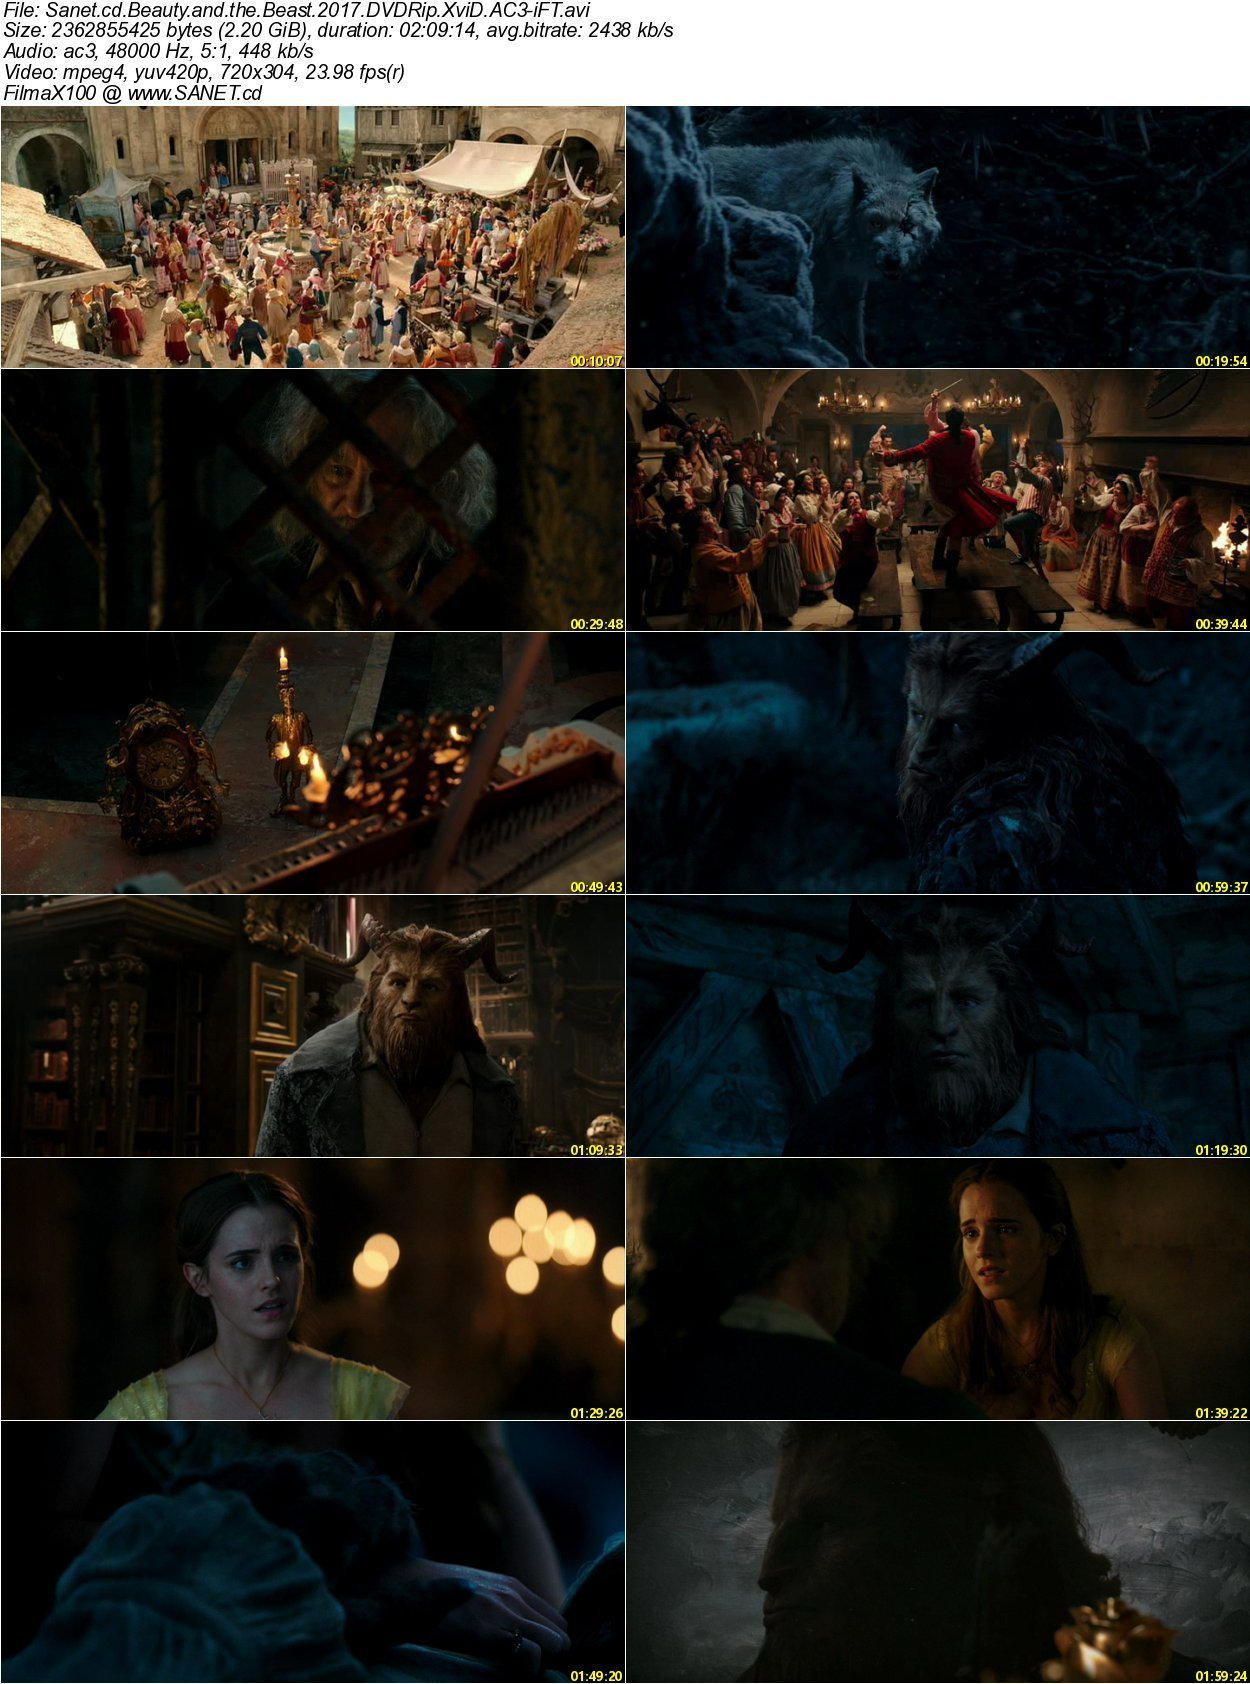 beauty and the beast 2017 dvdrip